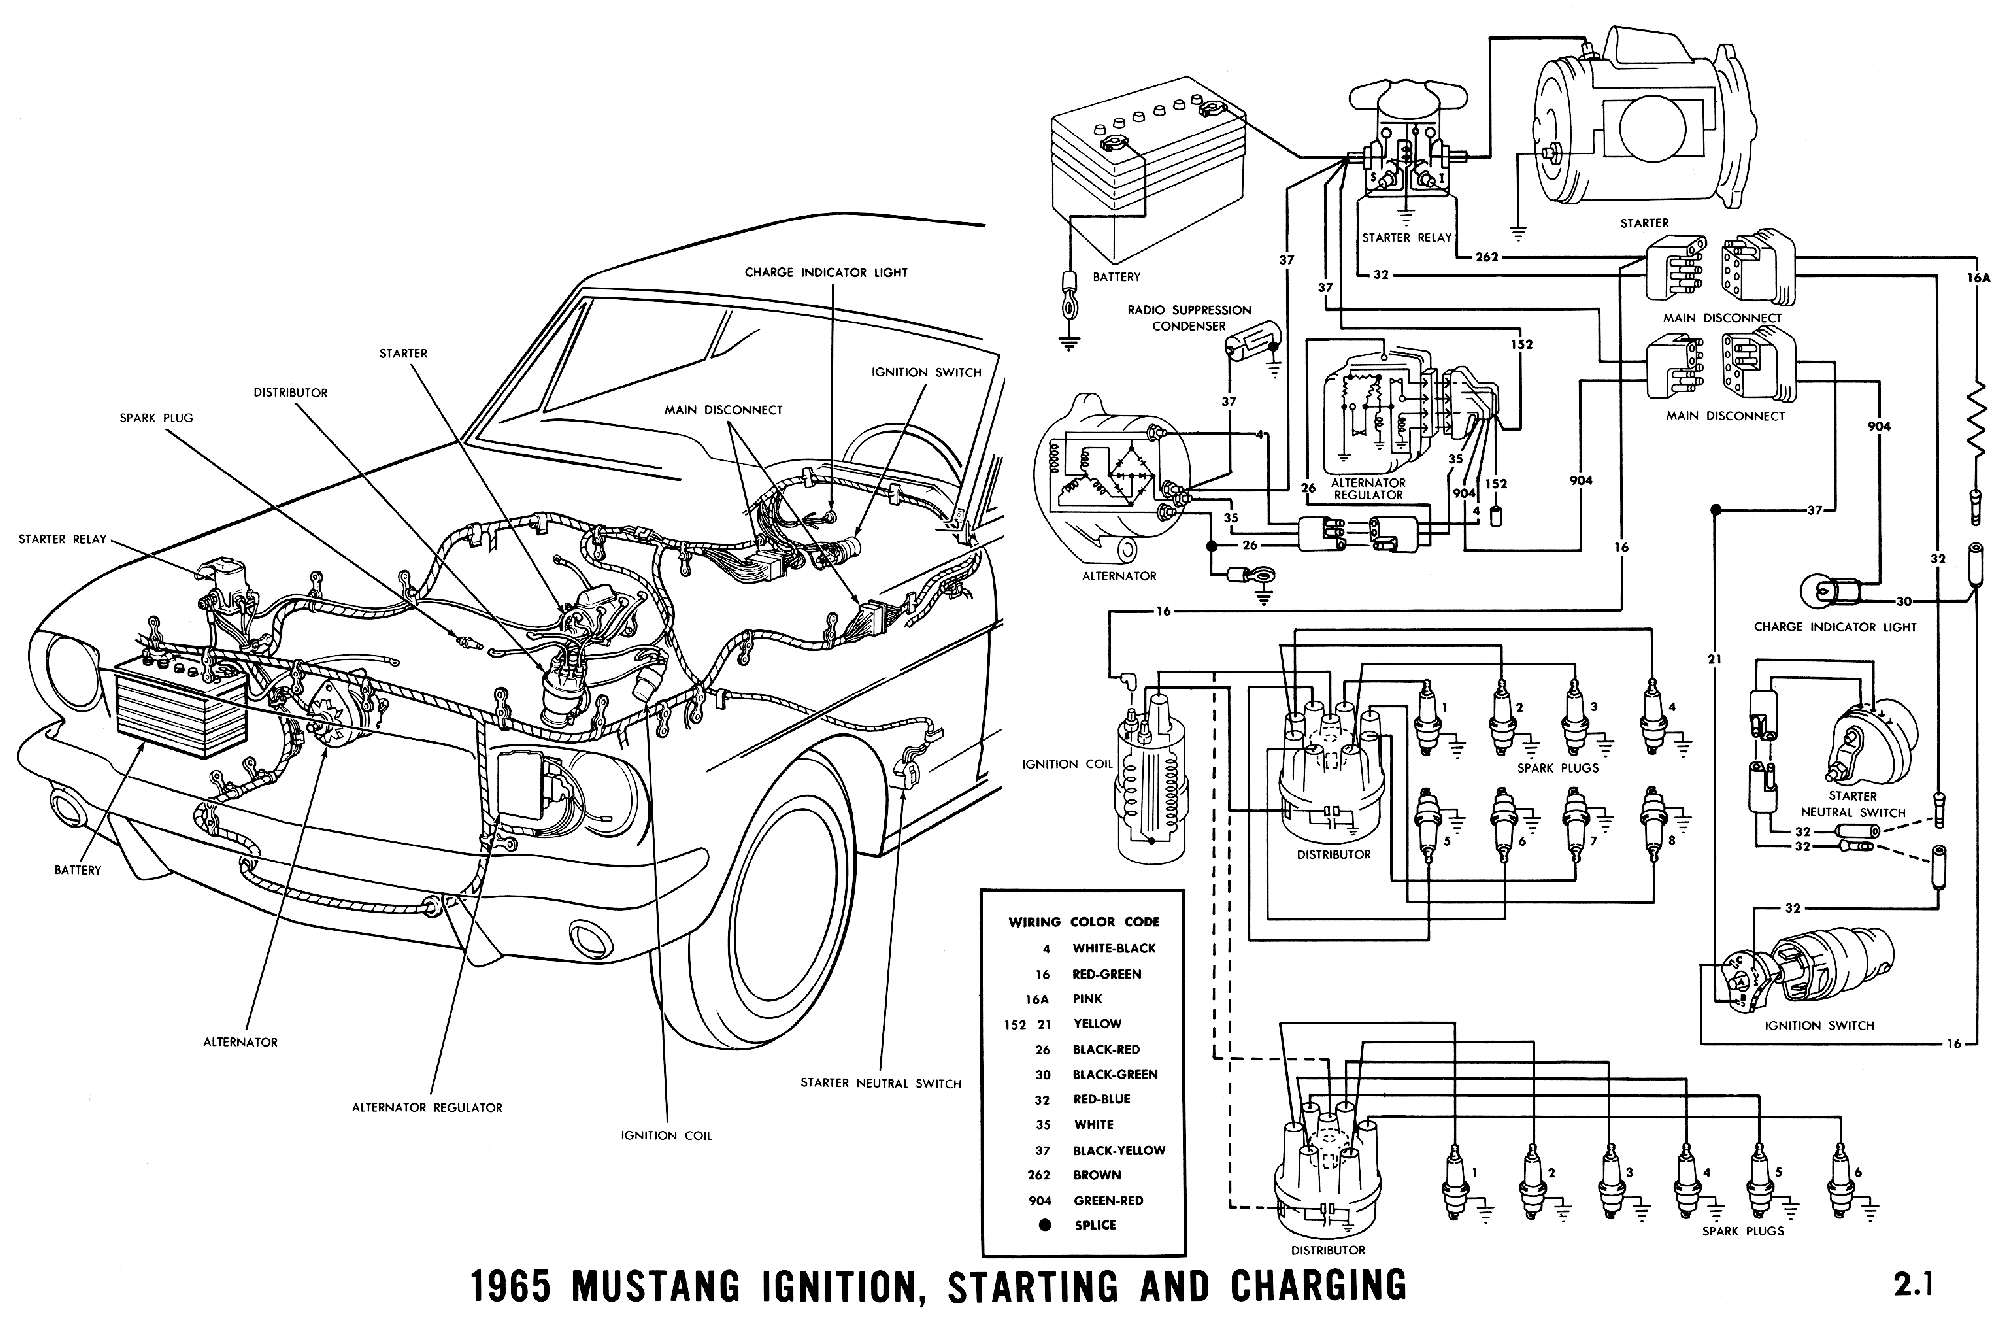 1976 Ford Mustang Wiring Diagram Schematics Fuse Box F 150 Detailed Schematic Diagrams 1981